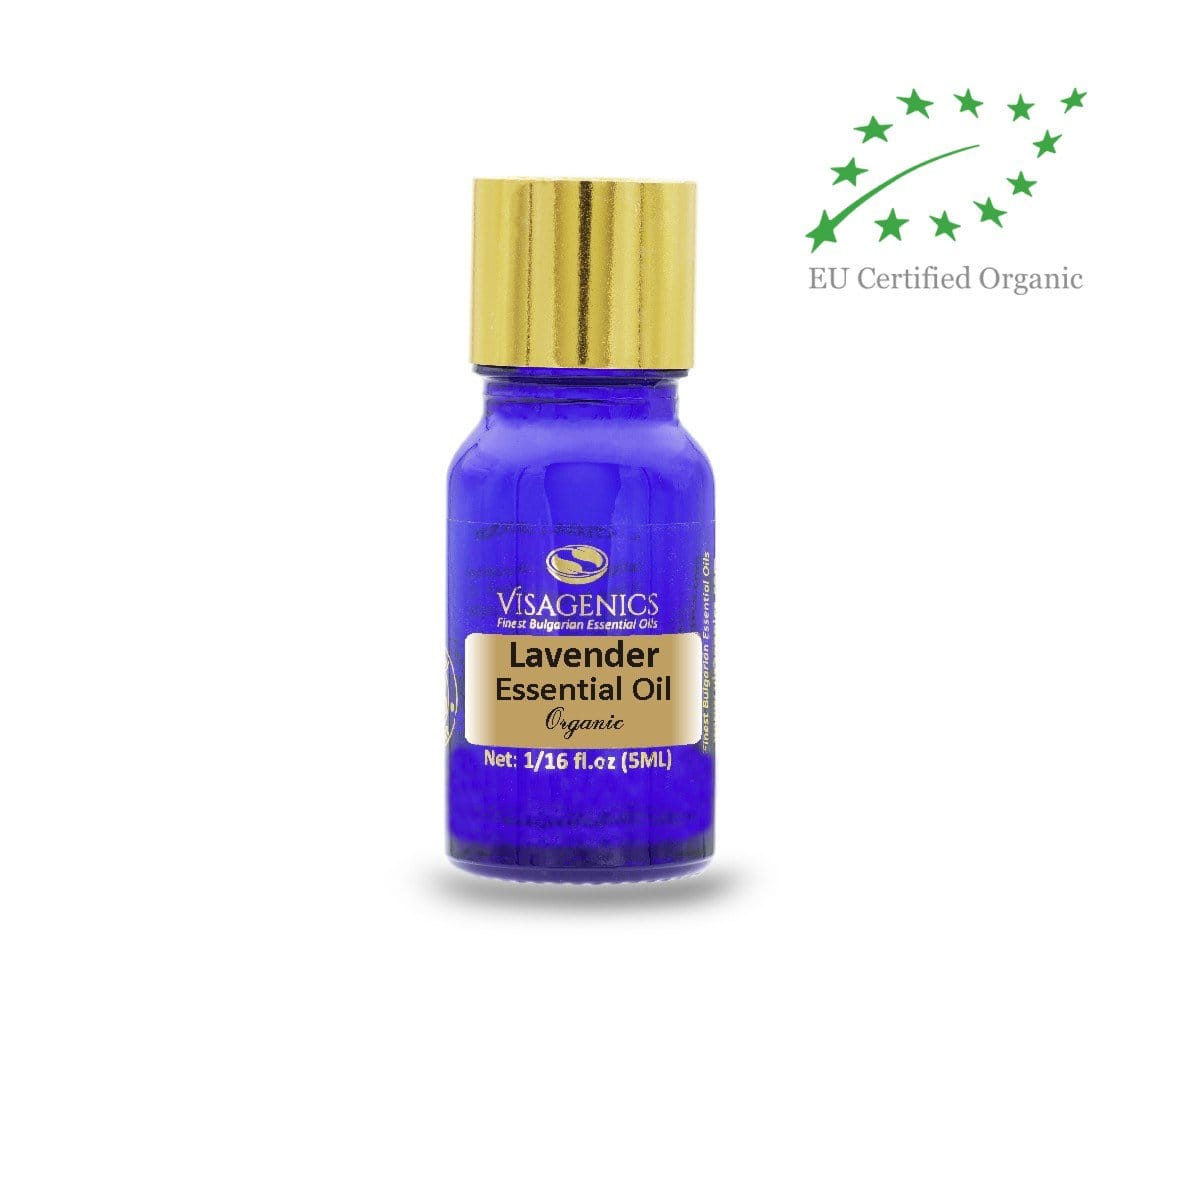 Lavender Essential Oil | FREE SAMPLE - 10ml | Max 1 per Customer